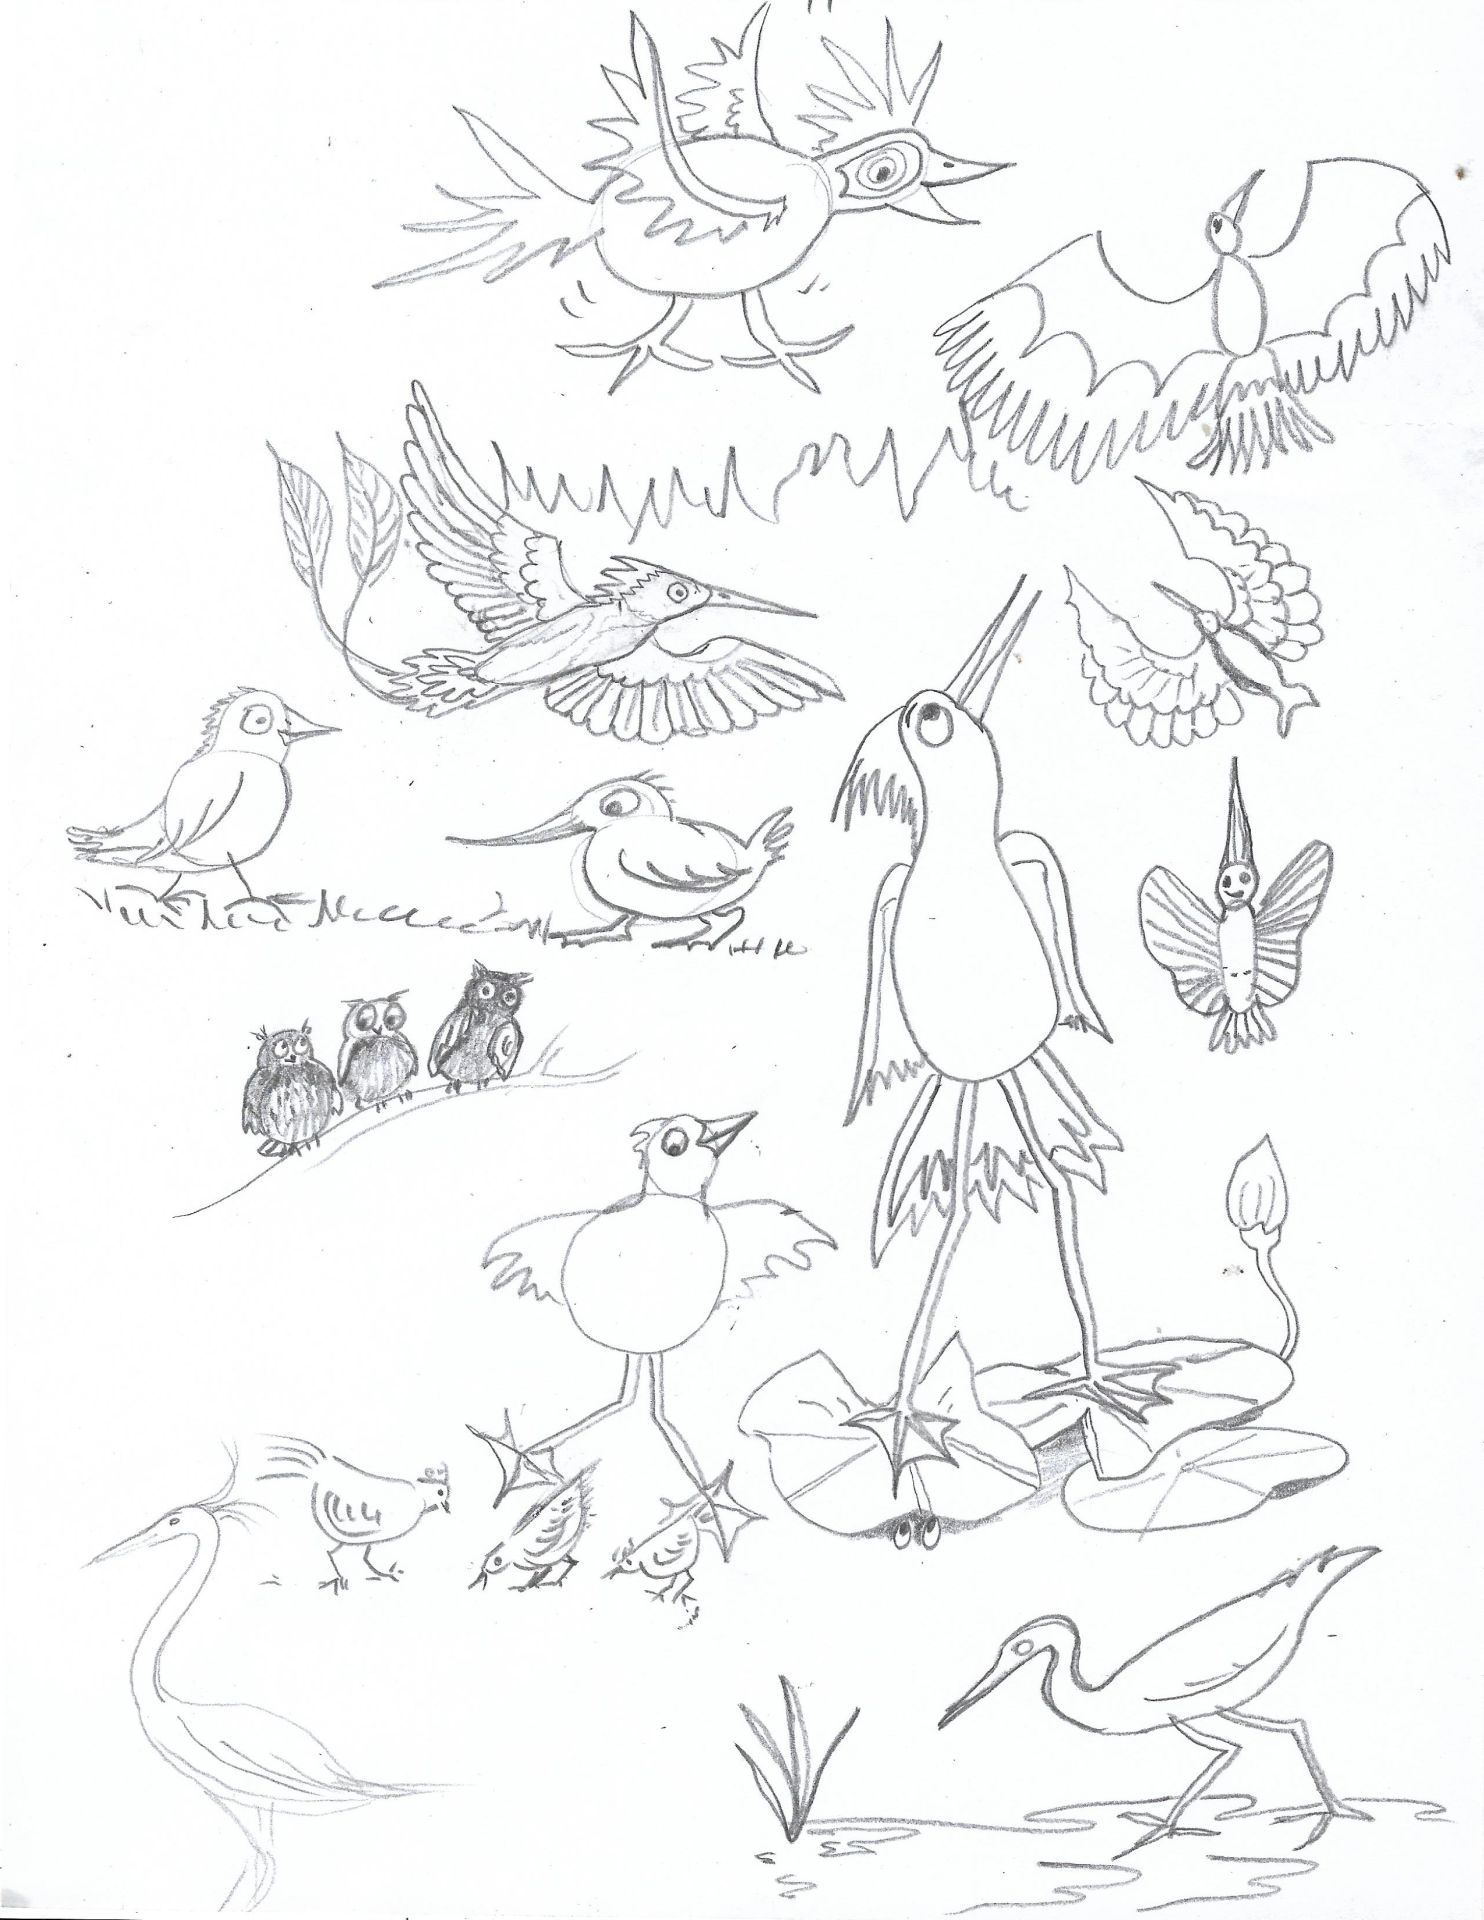 09b for post DAB DAY misc birds 01